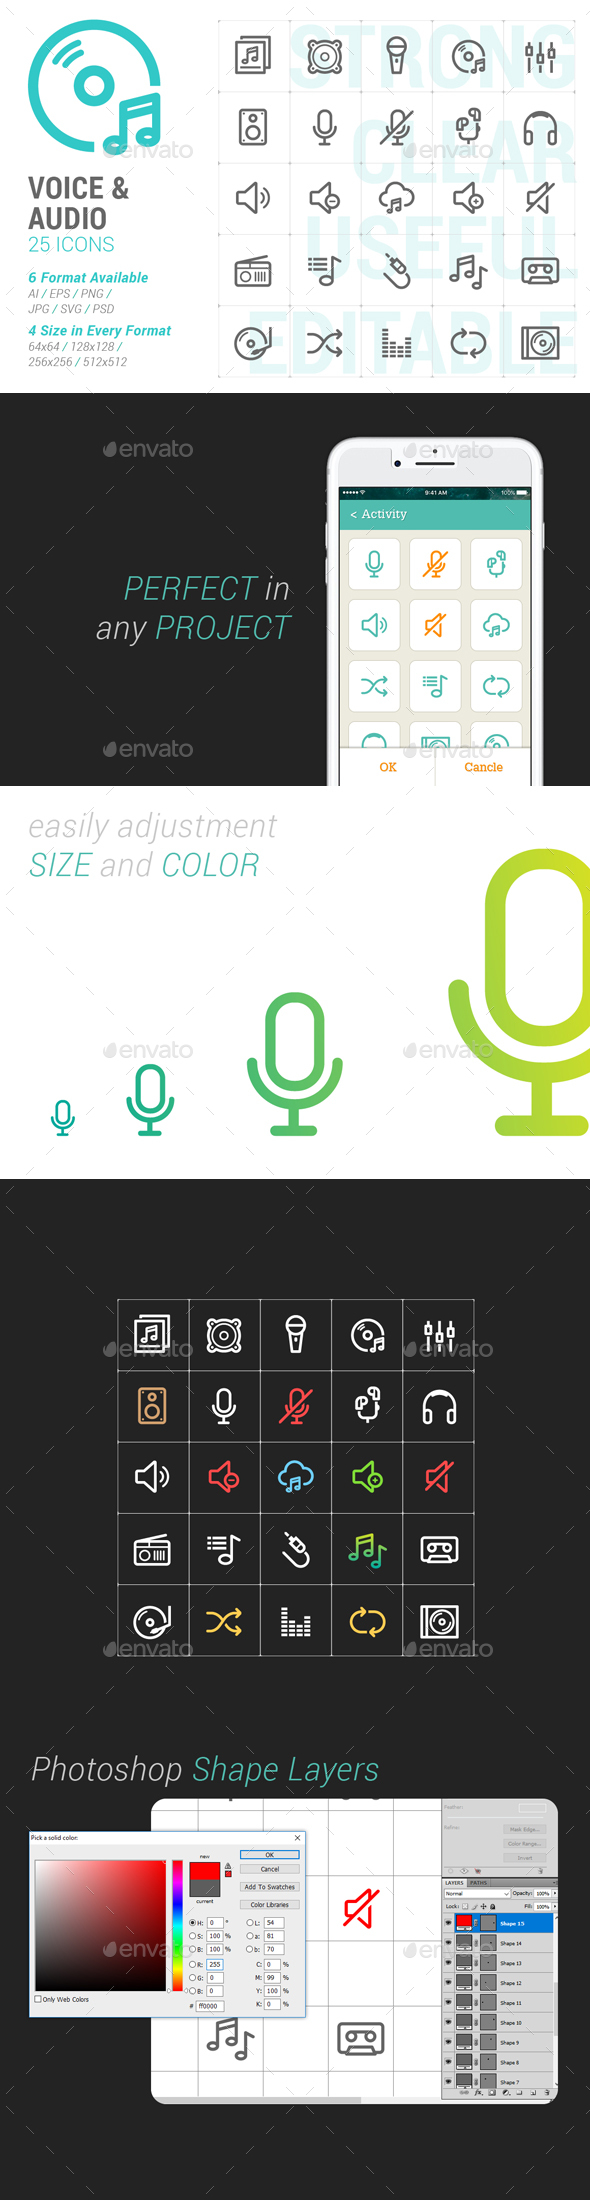 Voice & Audio Mini Icon - Media Icons